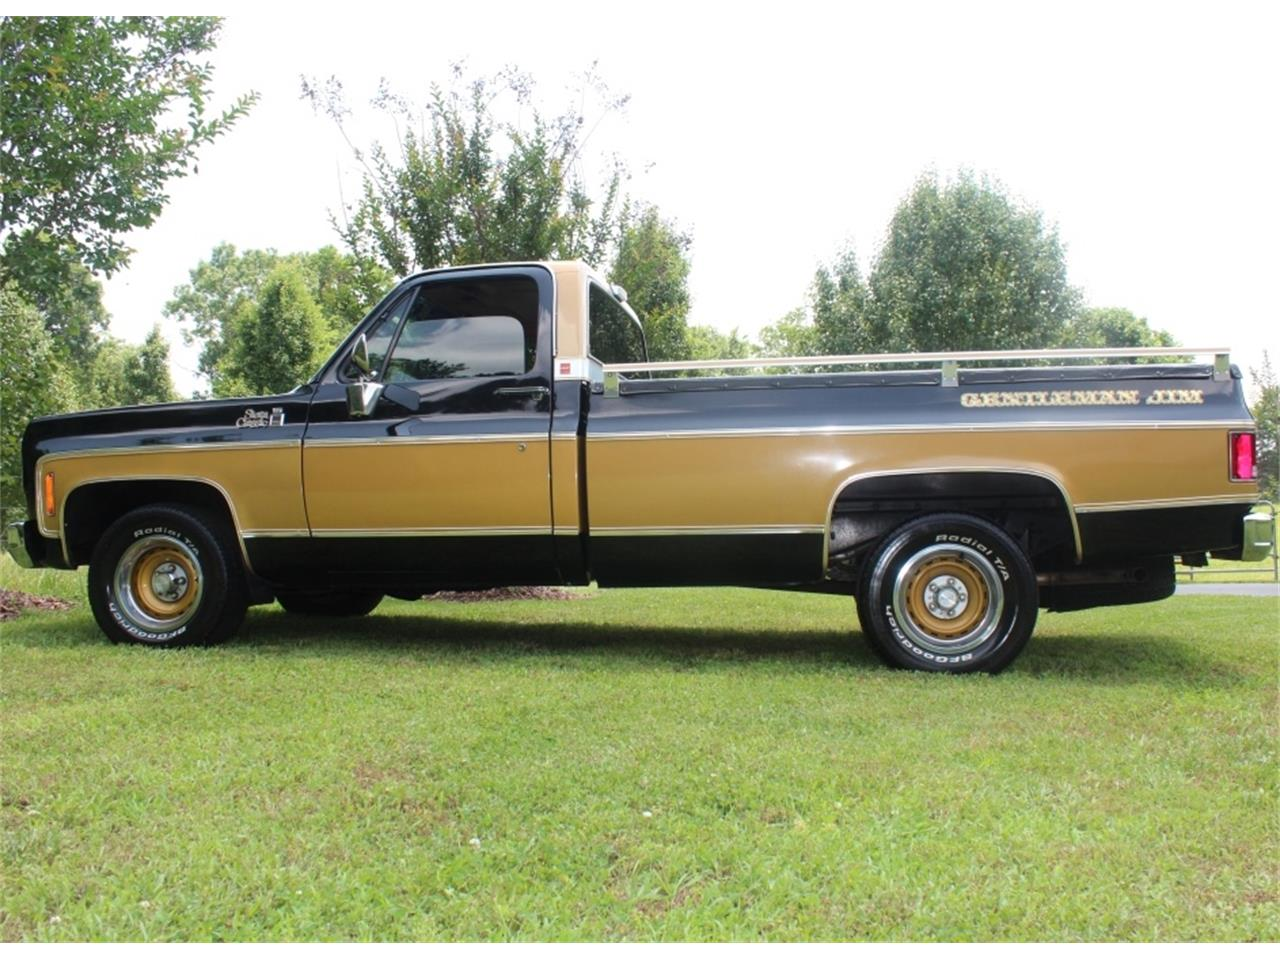 Large Picture of '75 GMC Pickup - $38,500.00 Offered by a Private Seller - CEOU